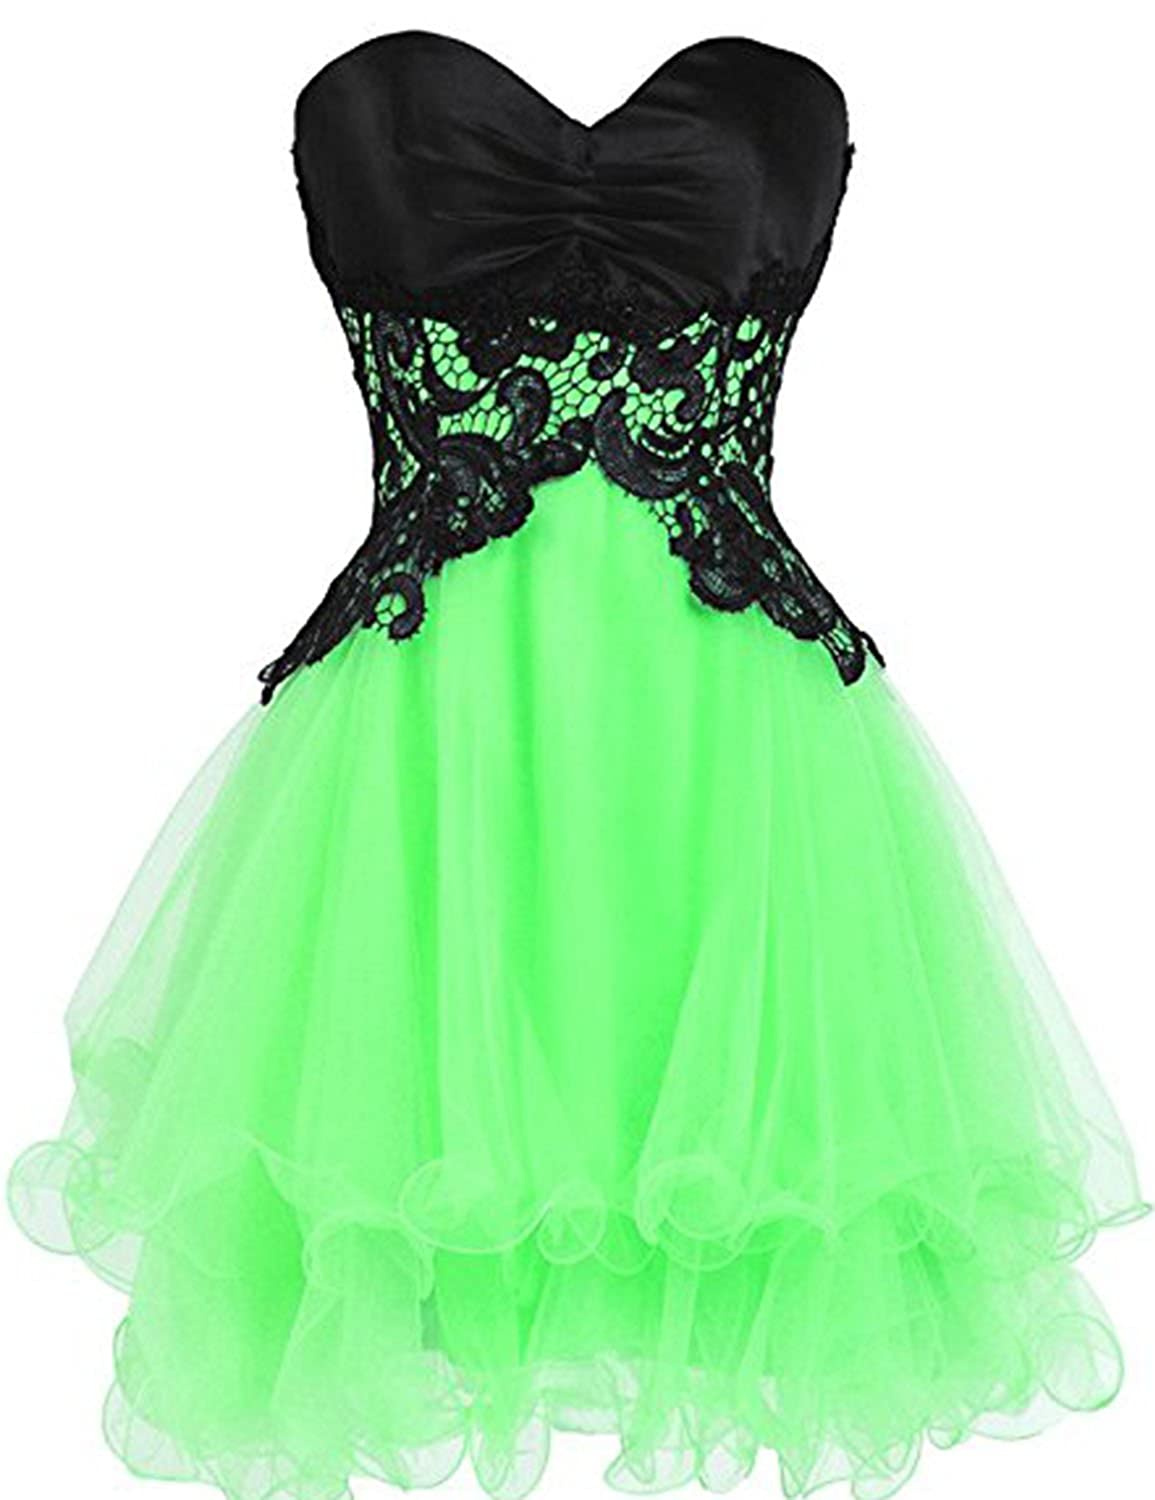 Bright Green YIRENWANSHA Sexy Short Homecoming Dress Elegant Satin Knee Length Tulle Prom Party Gown YJW3